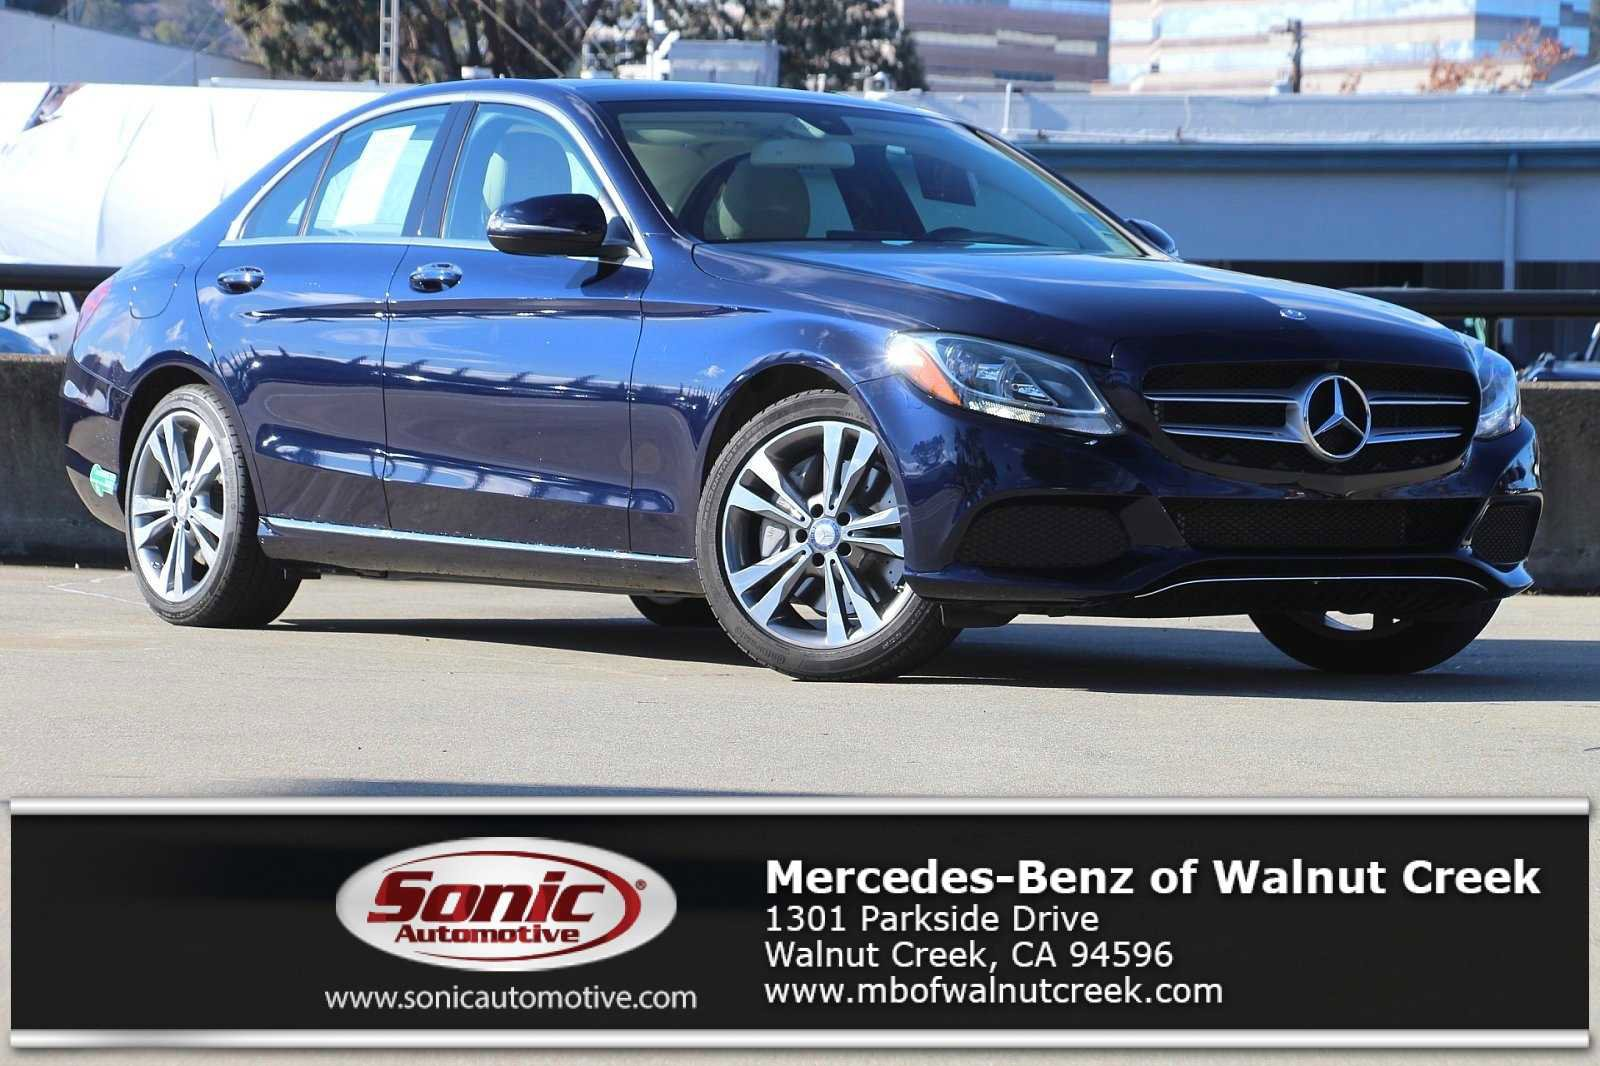 2016 Mercedes-Benz C 350e Sedan image